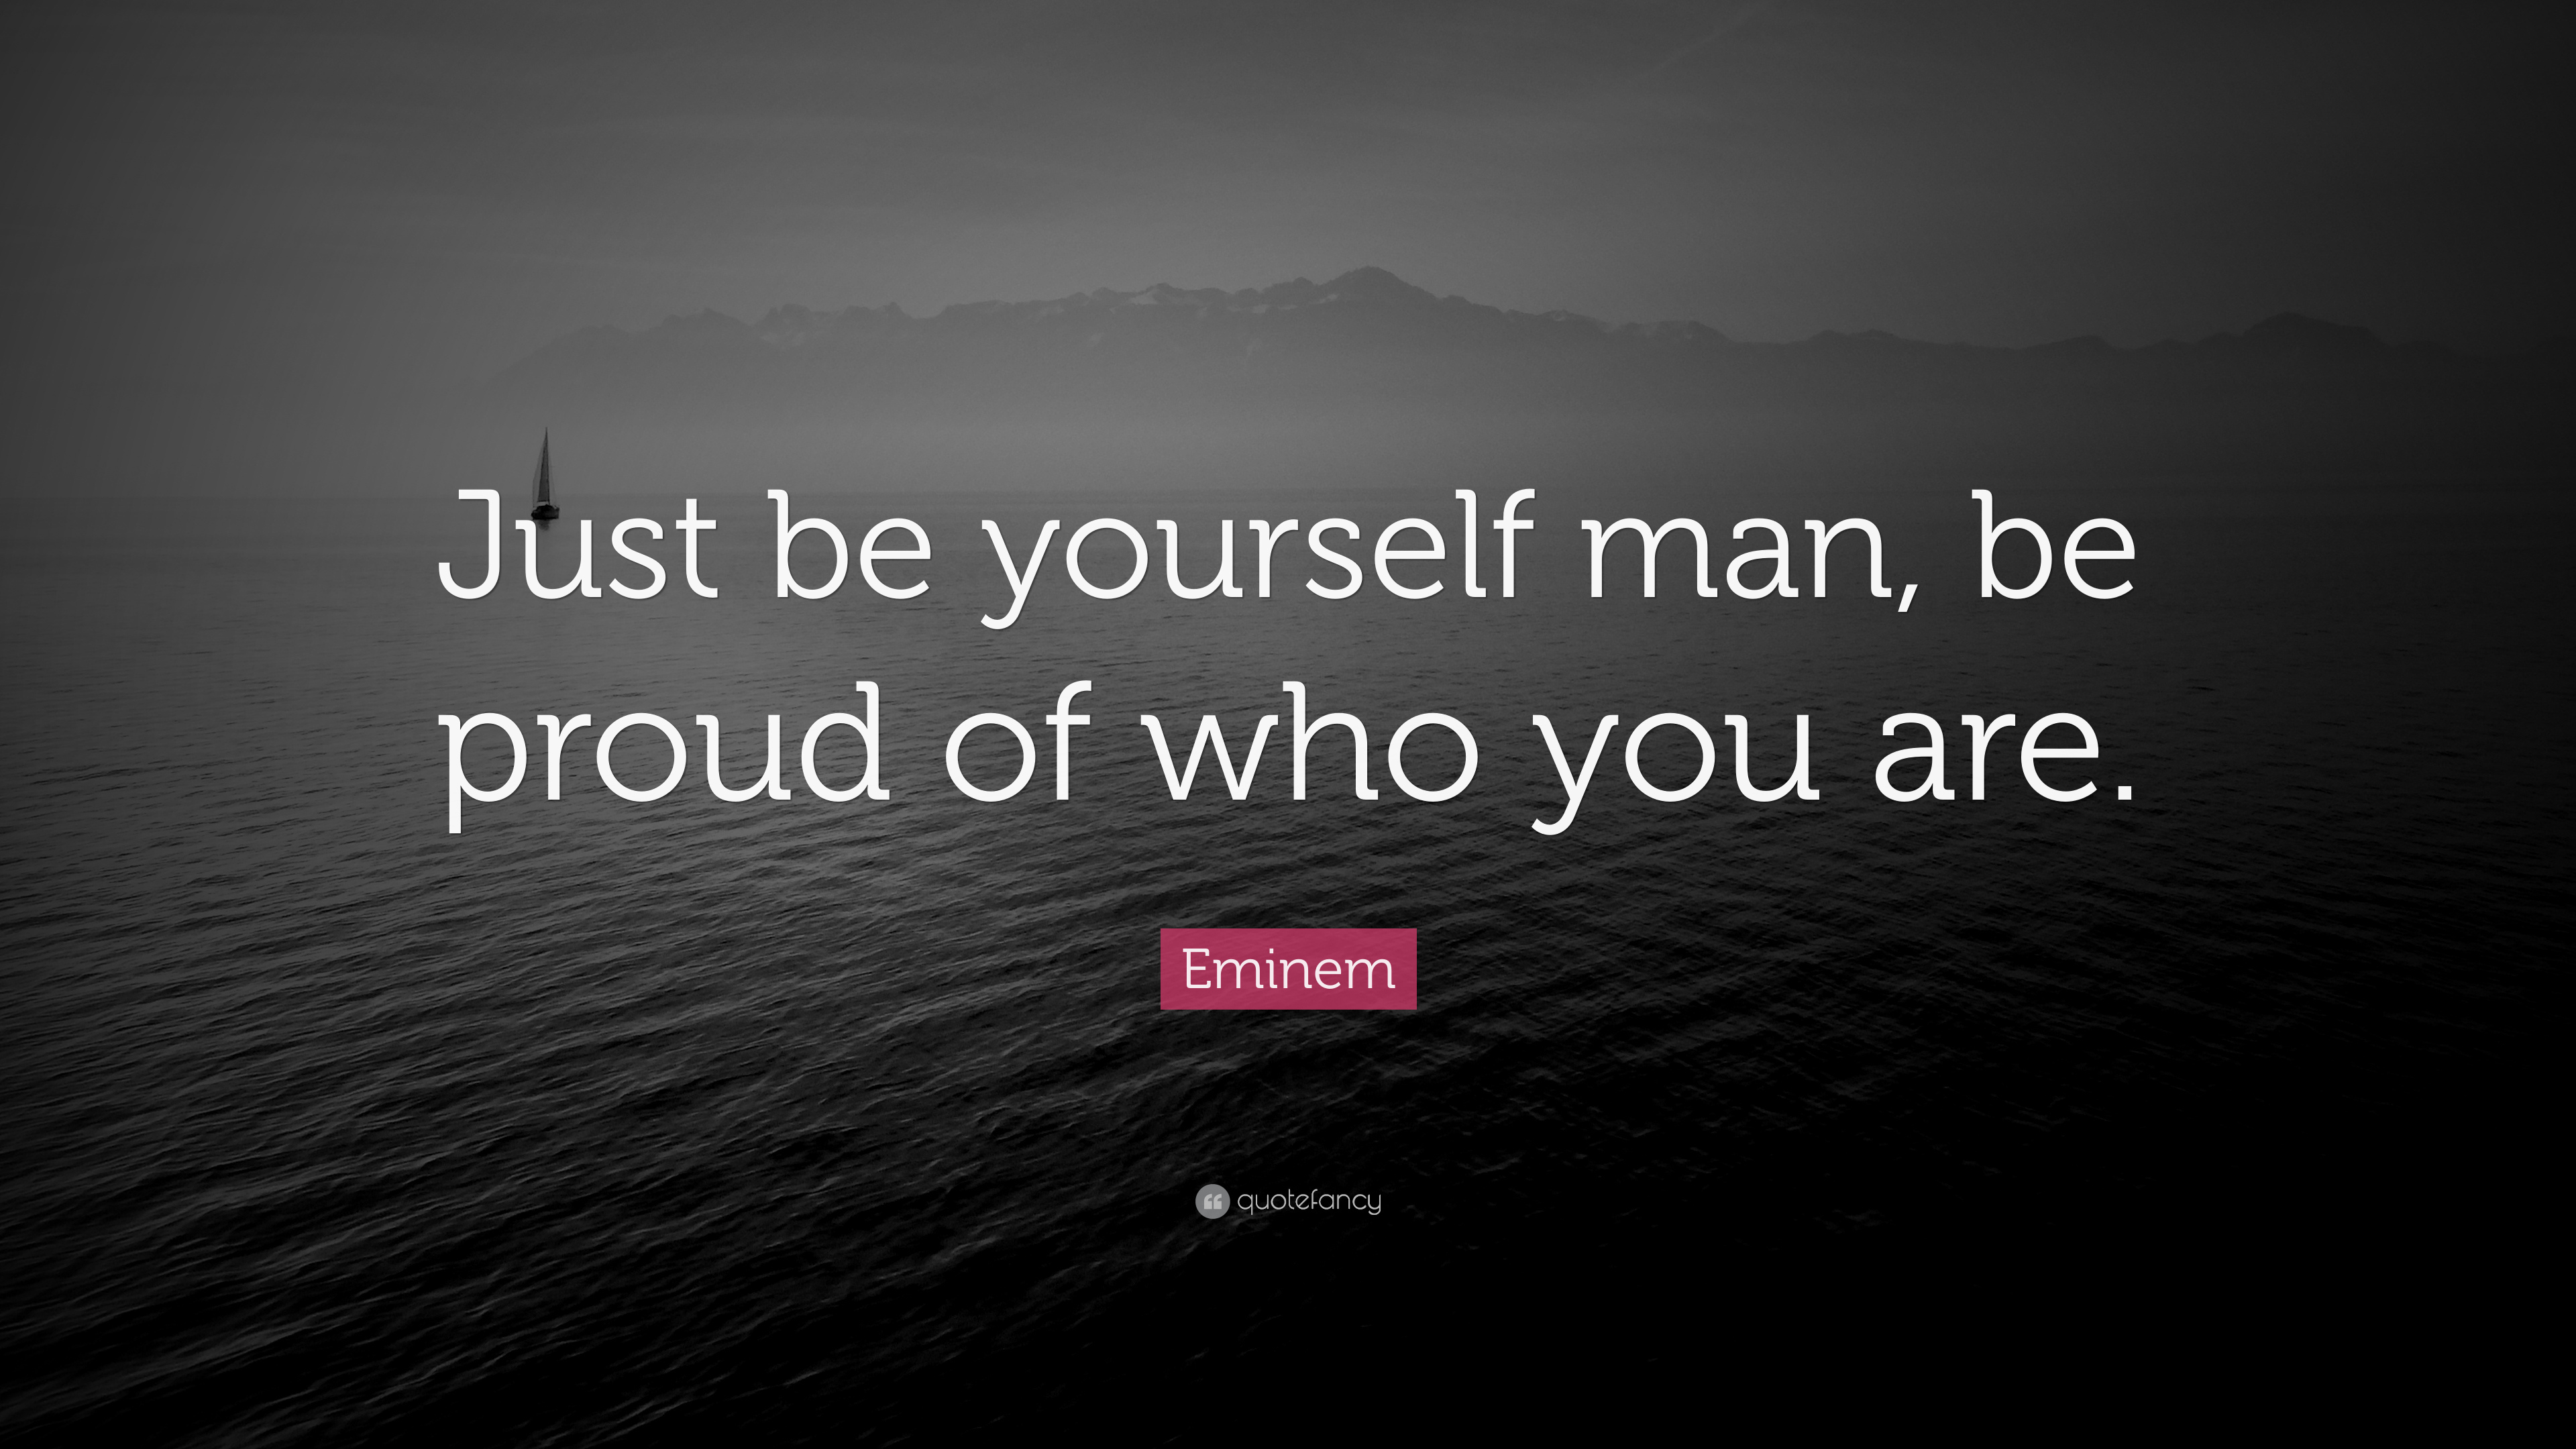 Eminem Quote Just Be Yourself Man Be Proud Of Who You Are 12